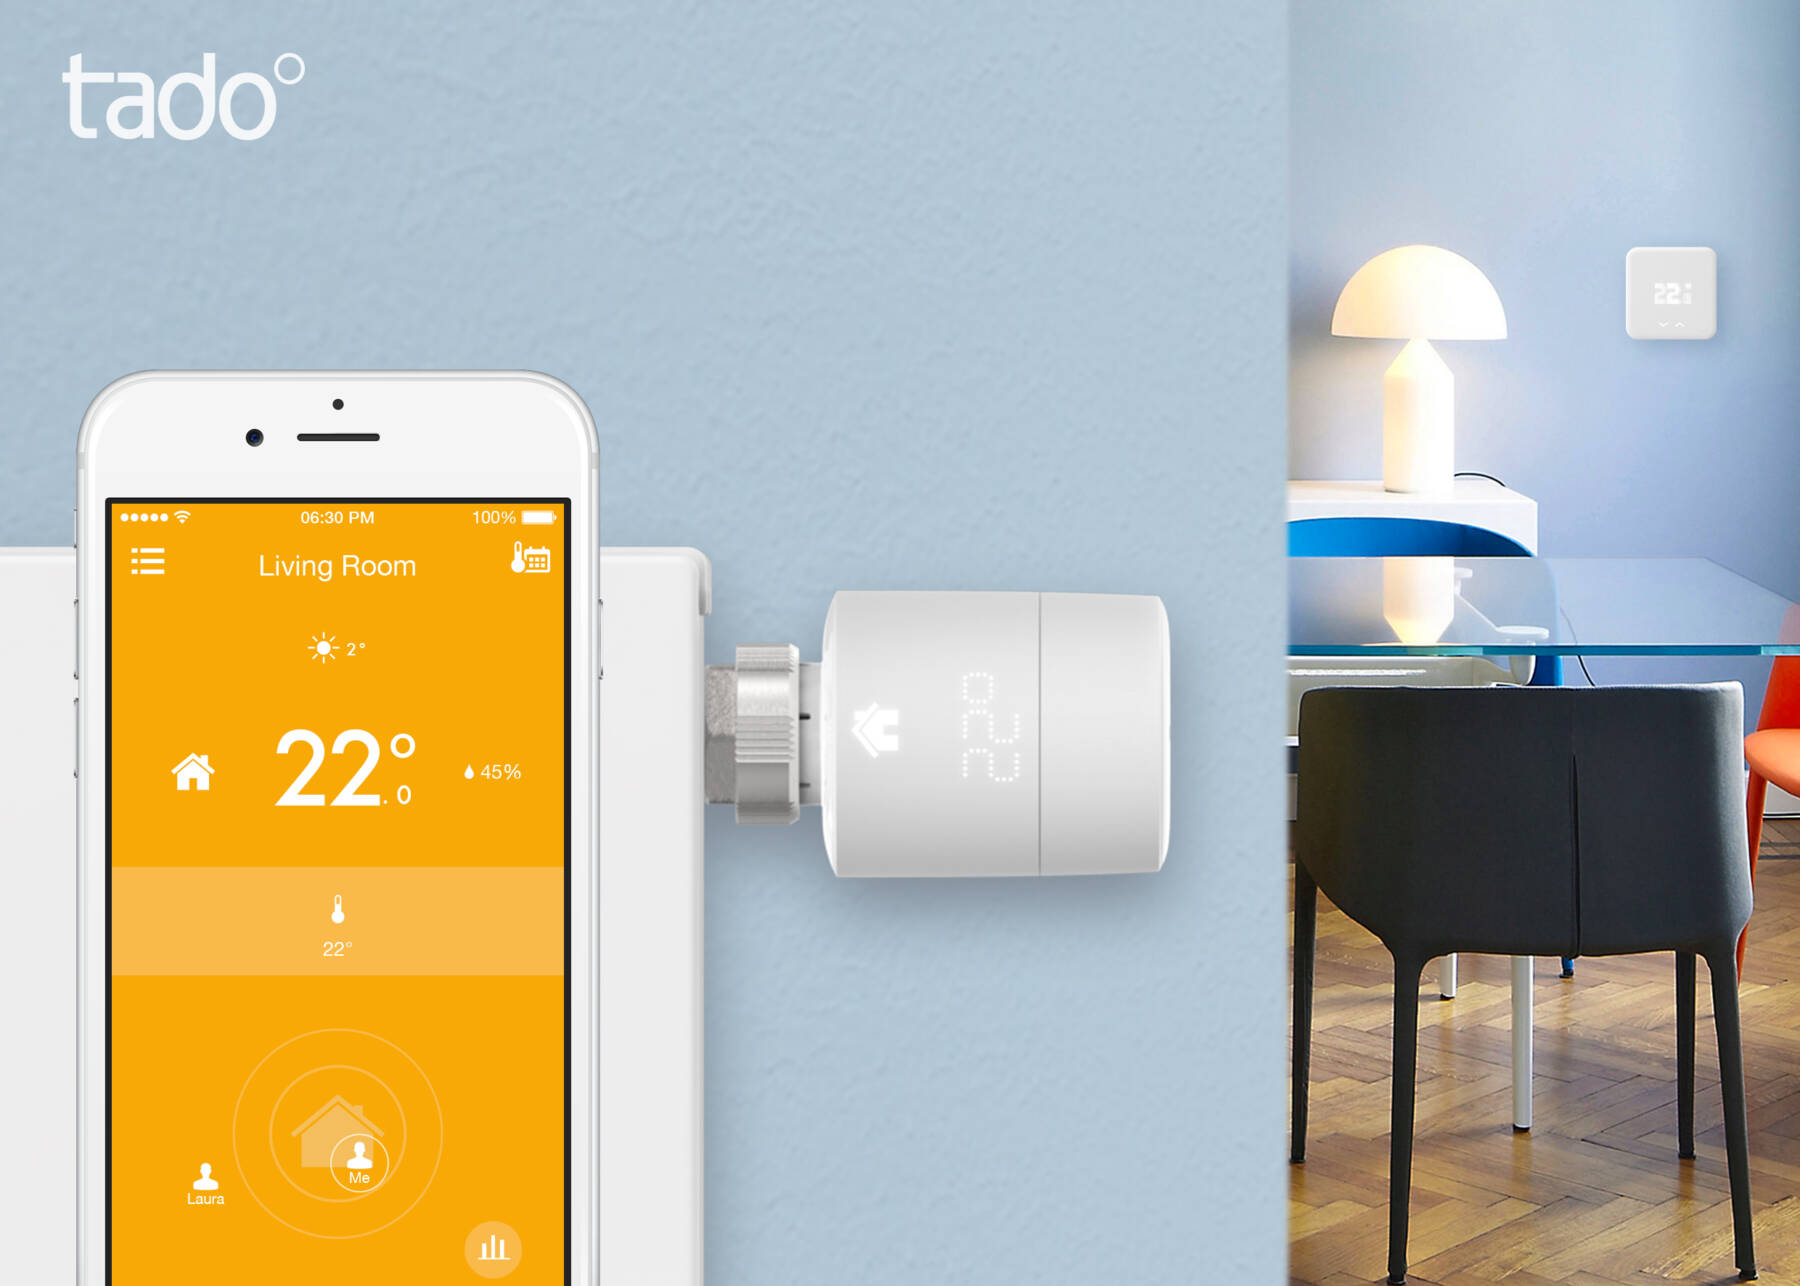 a mobile phone with the tado app open and the radiator thermostat in the background